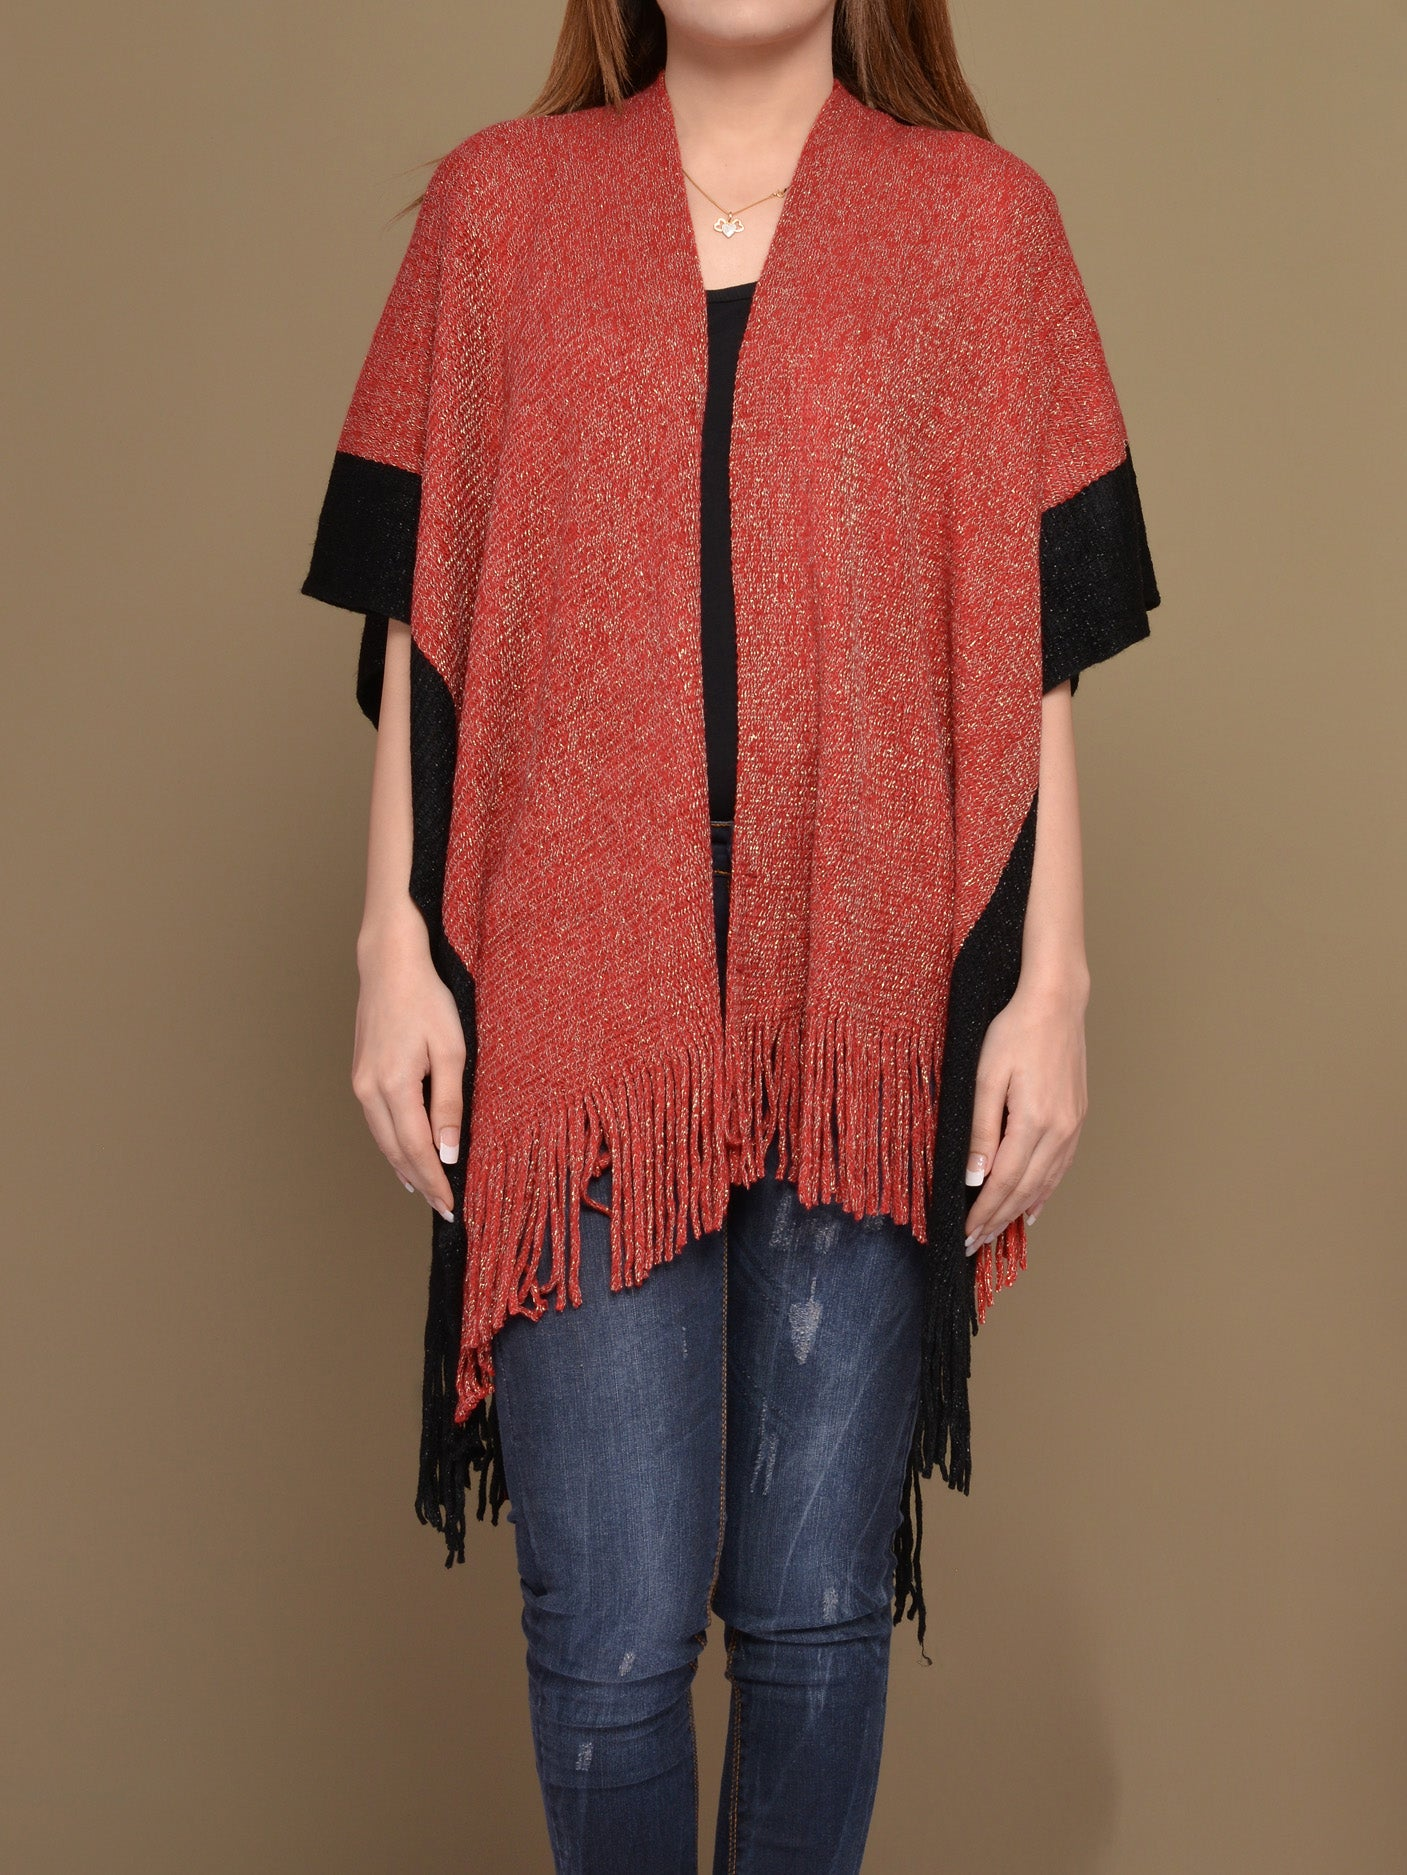 Two-Toned Cape Shawl